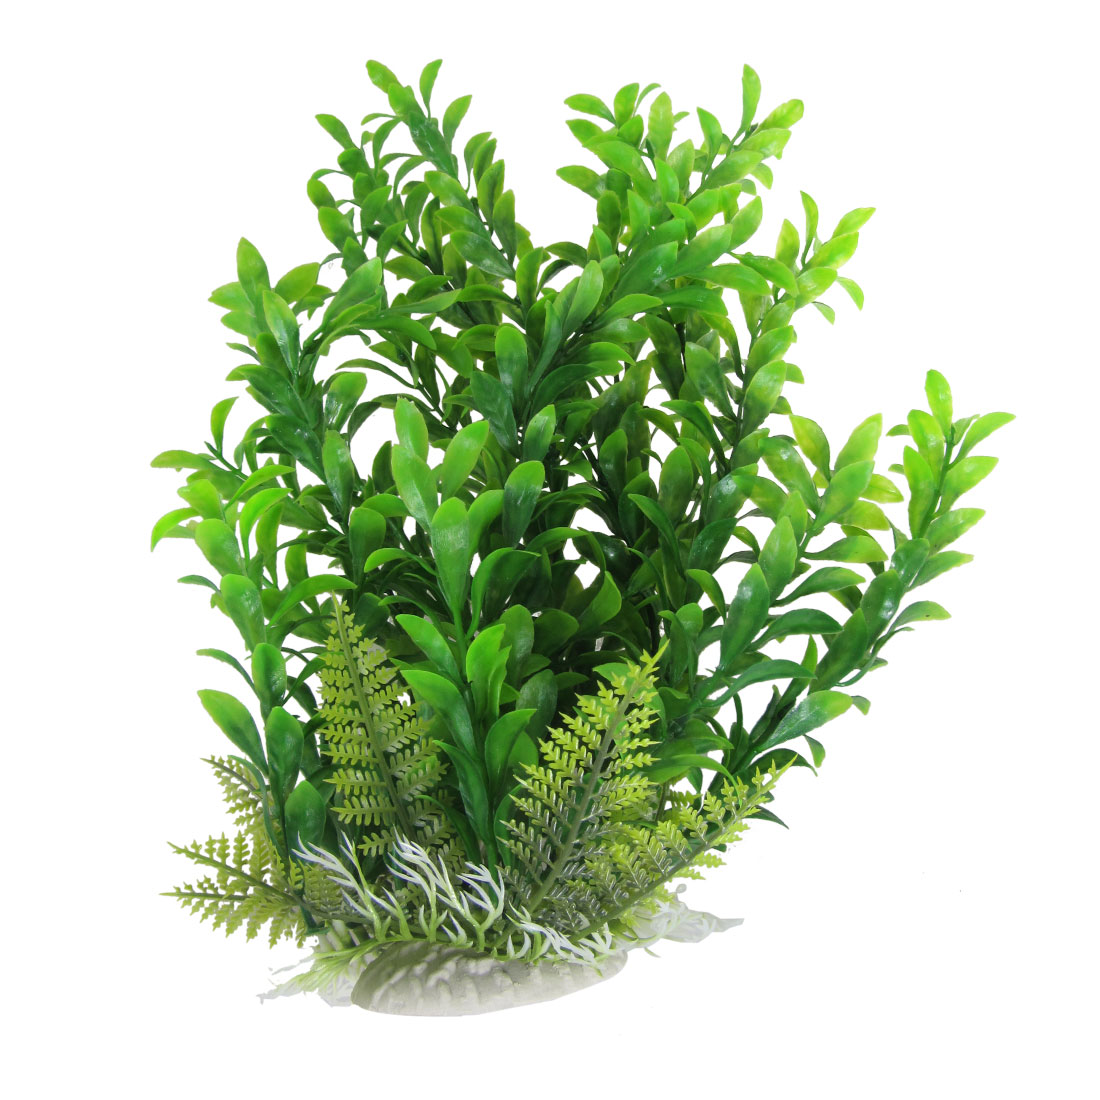 Fish Tank Aquarium Ornament Green Plastic Plant Grasses 13.6""